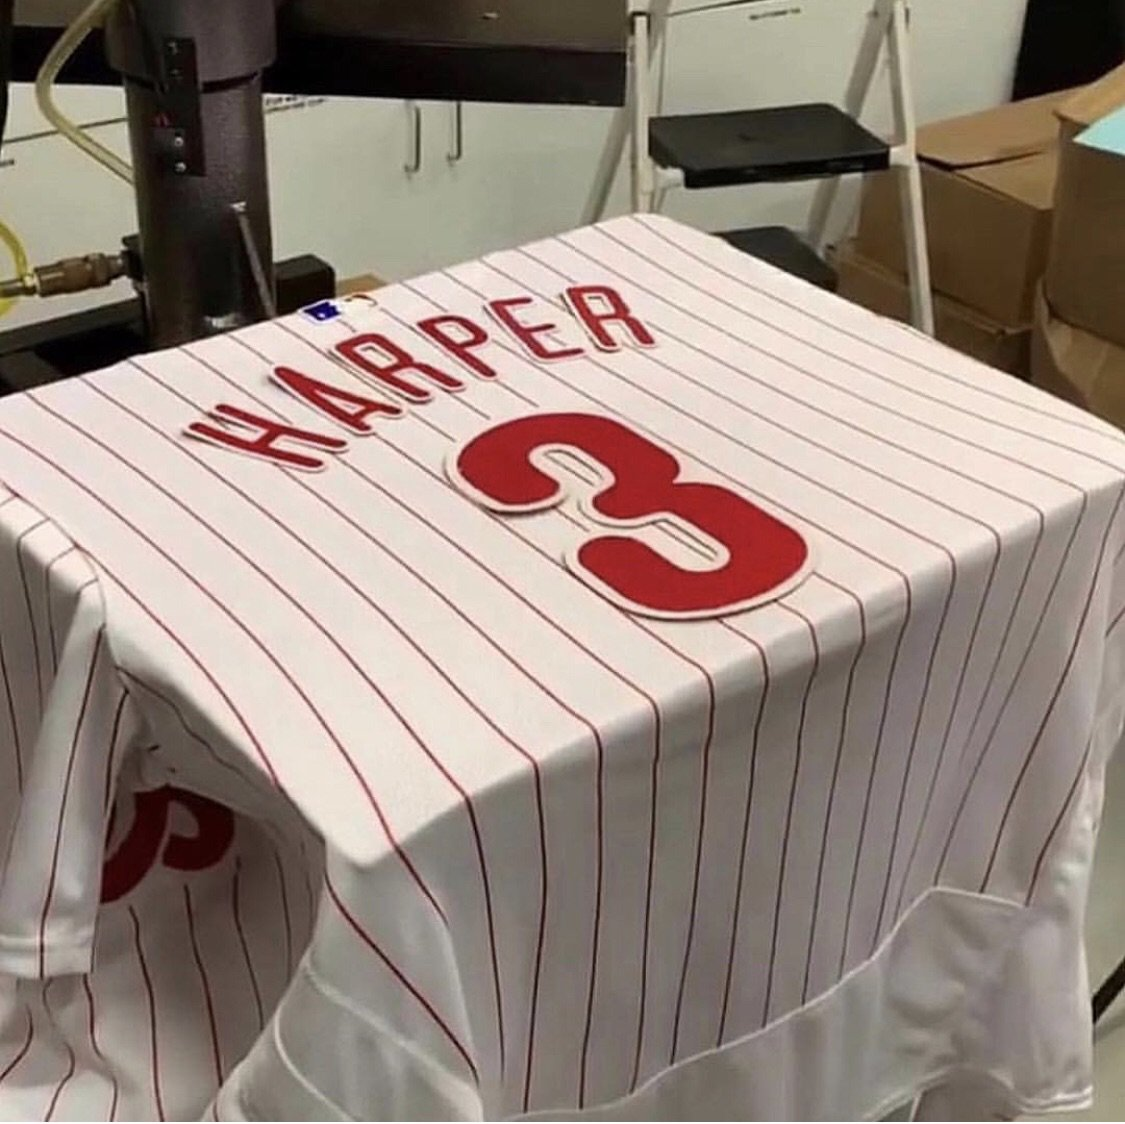 This number will be retired from the Phillies!!! #illHaveItFirst #SoDope #BryceFan #3